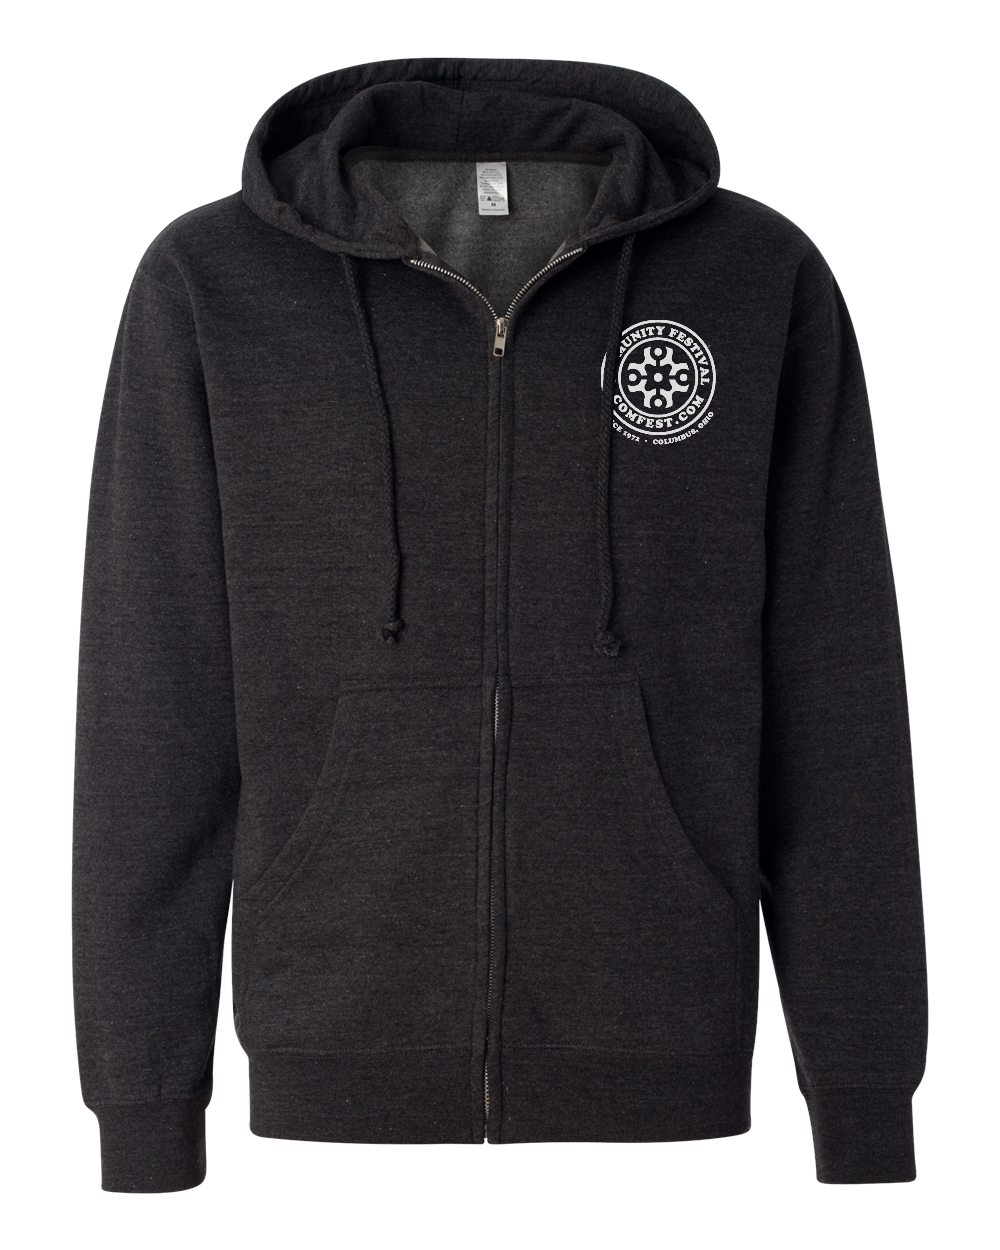 Classic ComFest Full-Zip Sweatshirt - Pre-sale only!